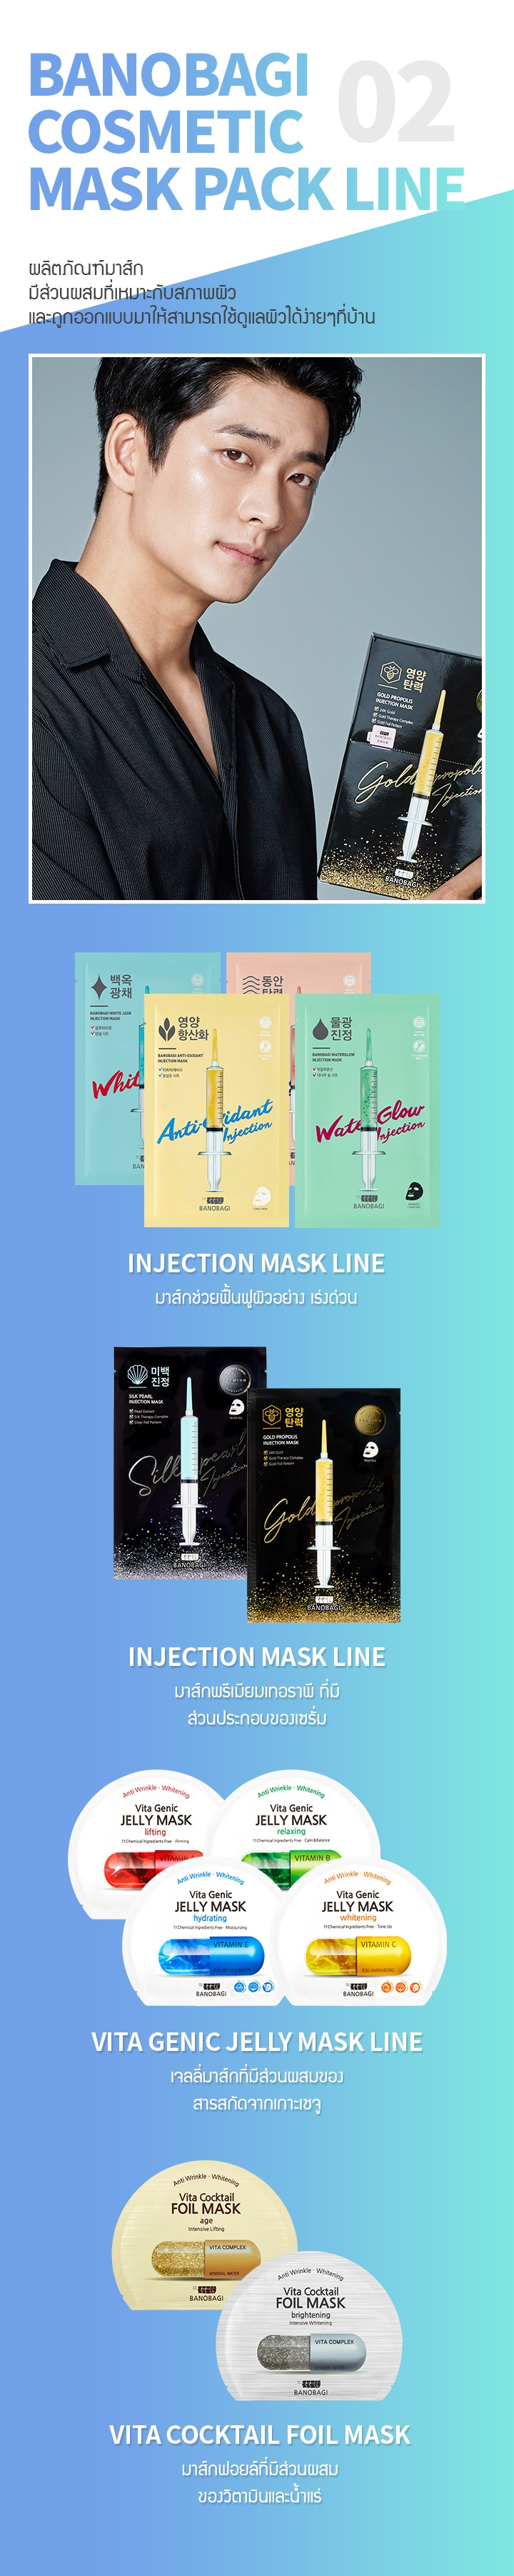 02 Banobagi Cosmetic Mask PACK line